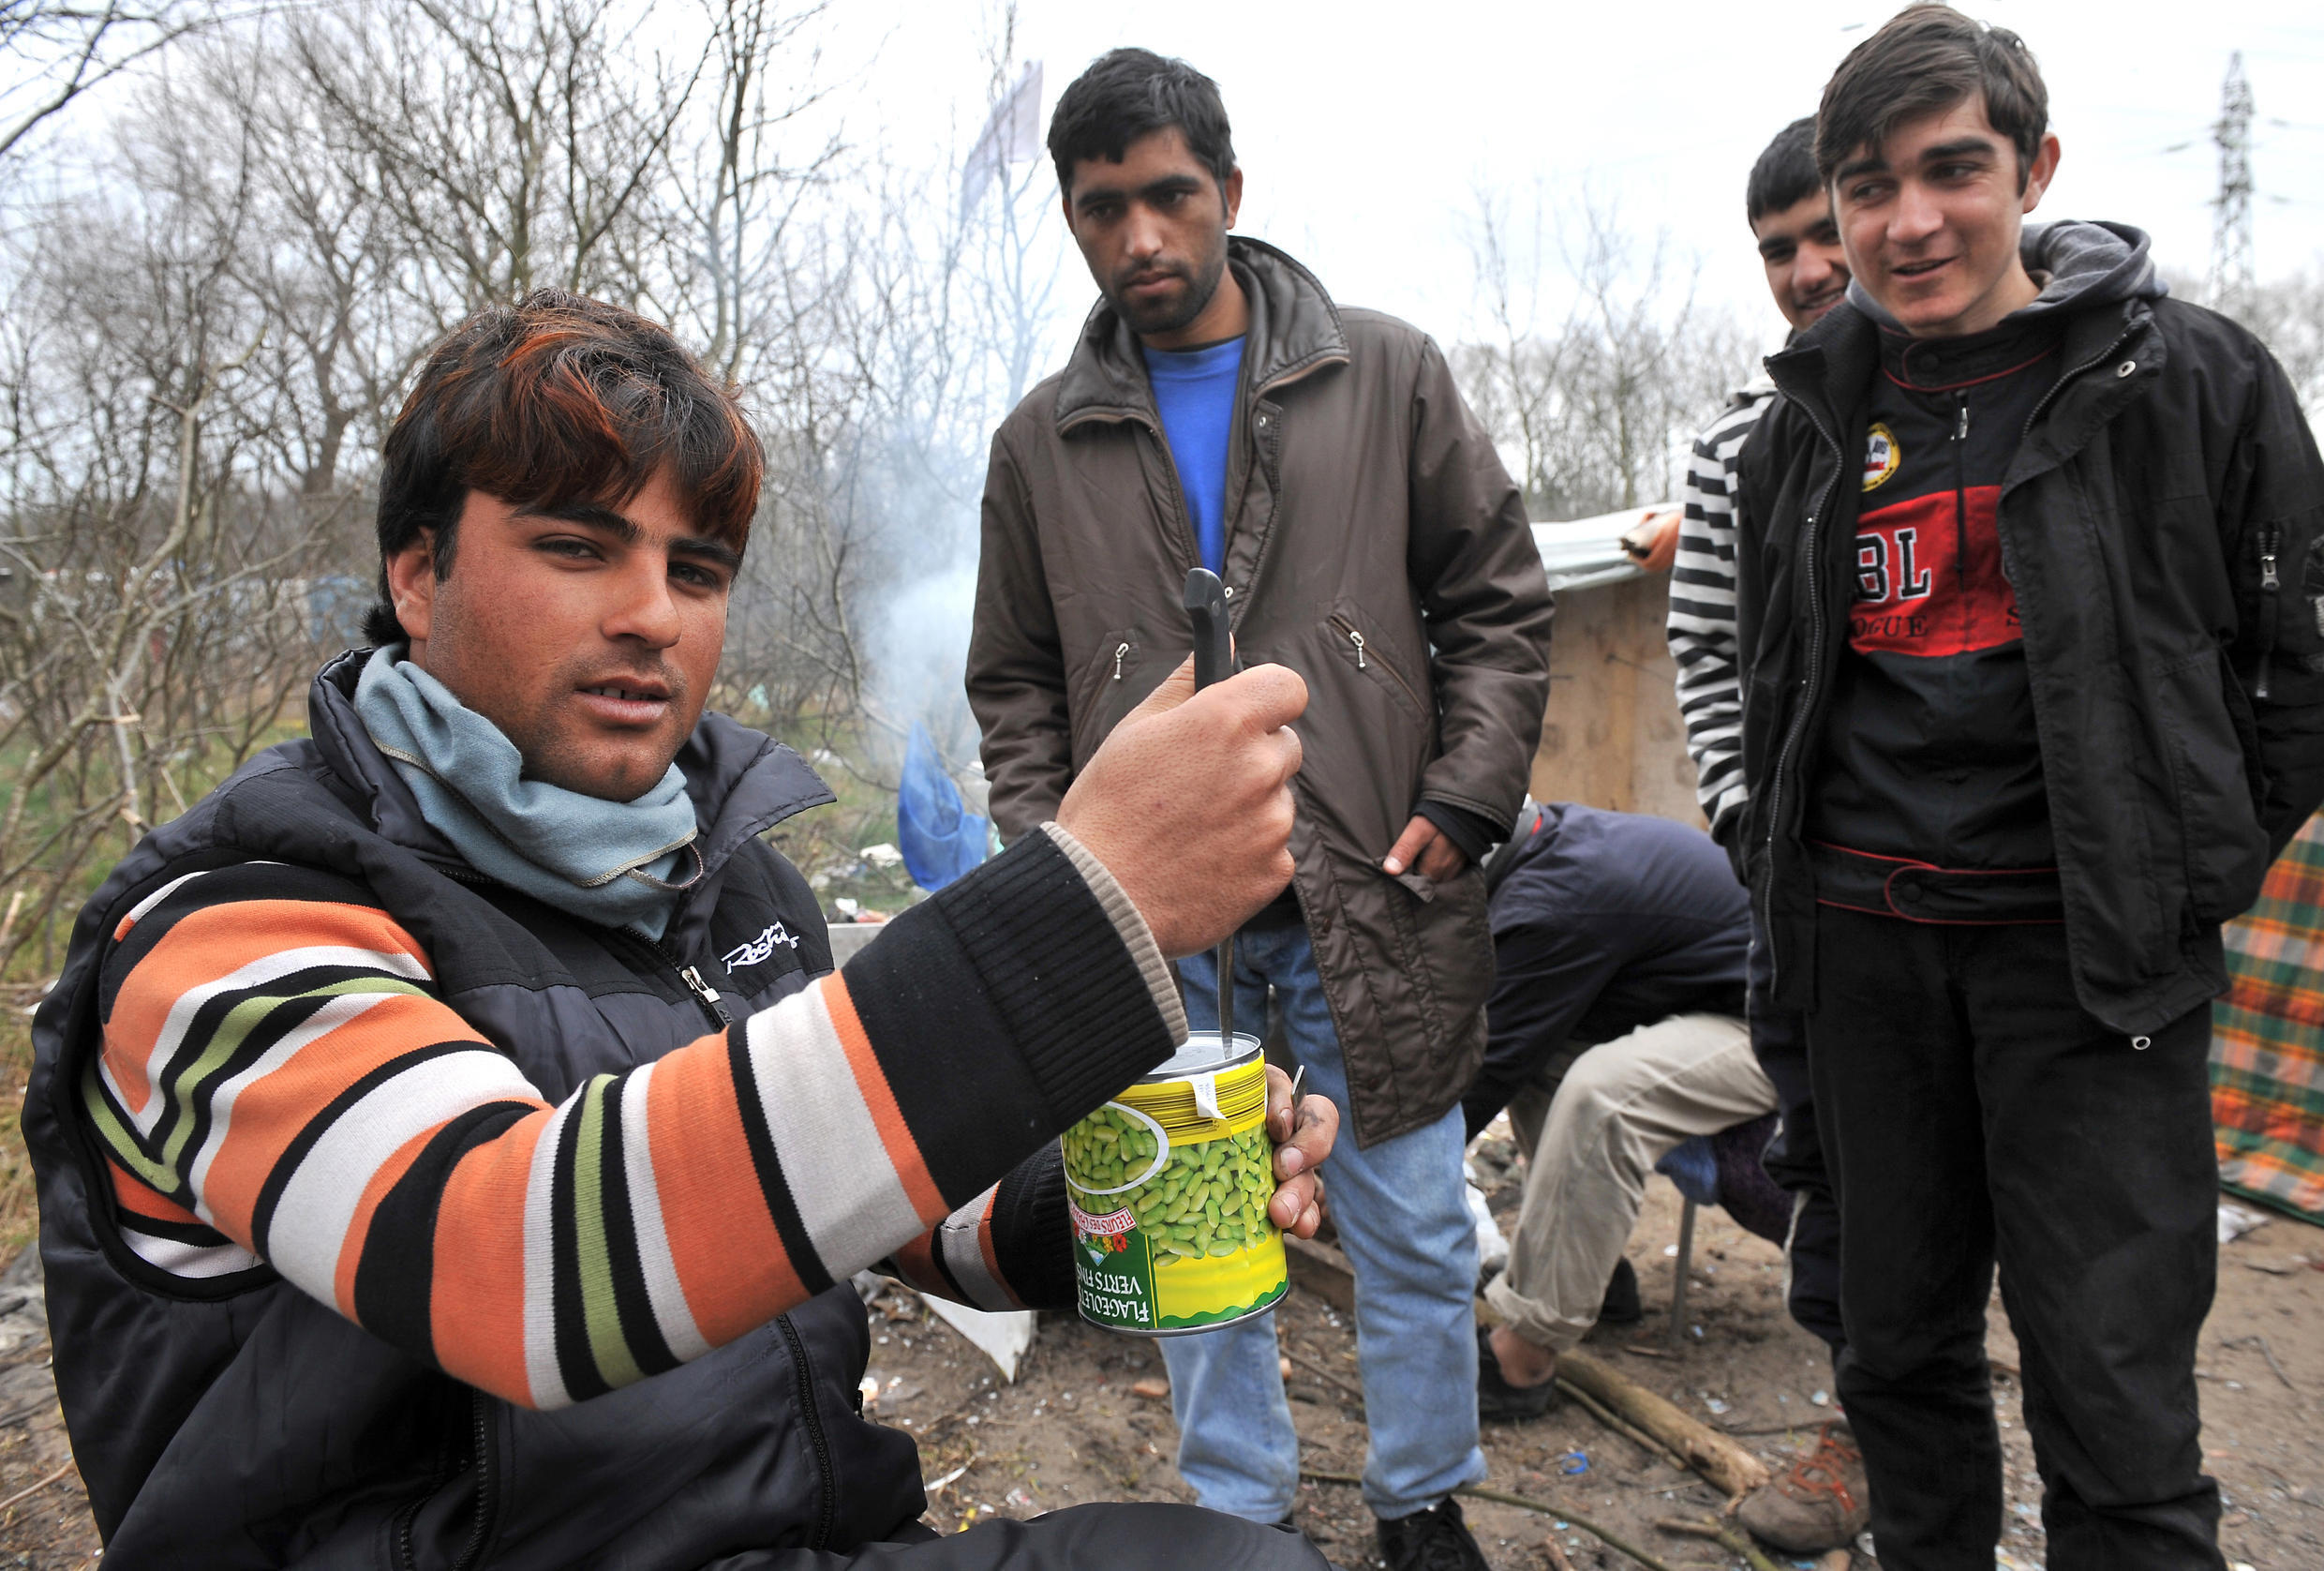 23 March 2009 - Afghan men prepare their meal in 'the Jungle' in Calais.